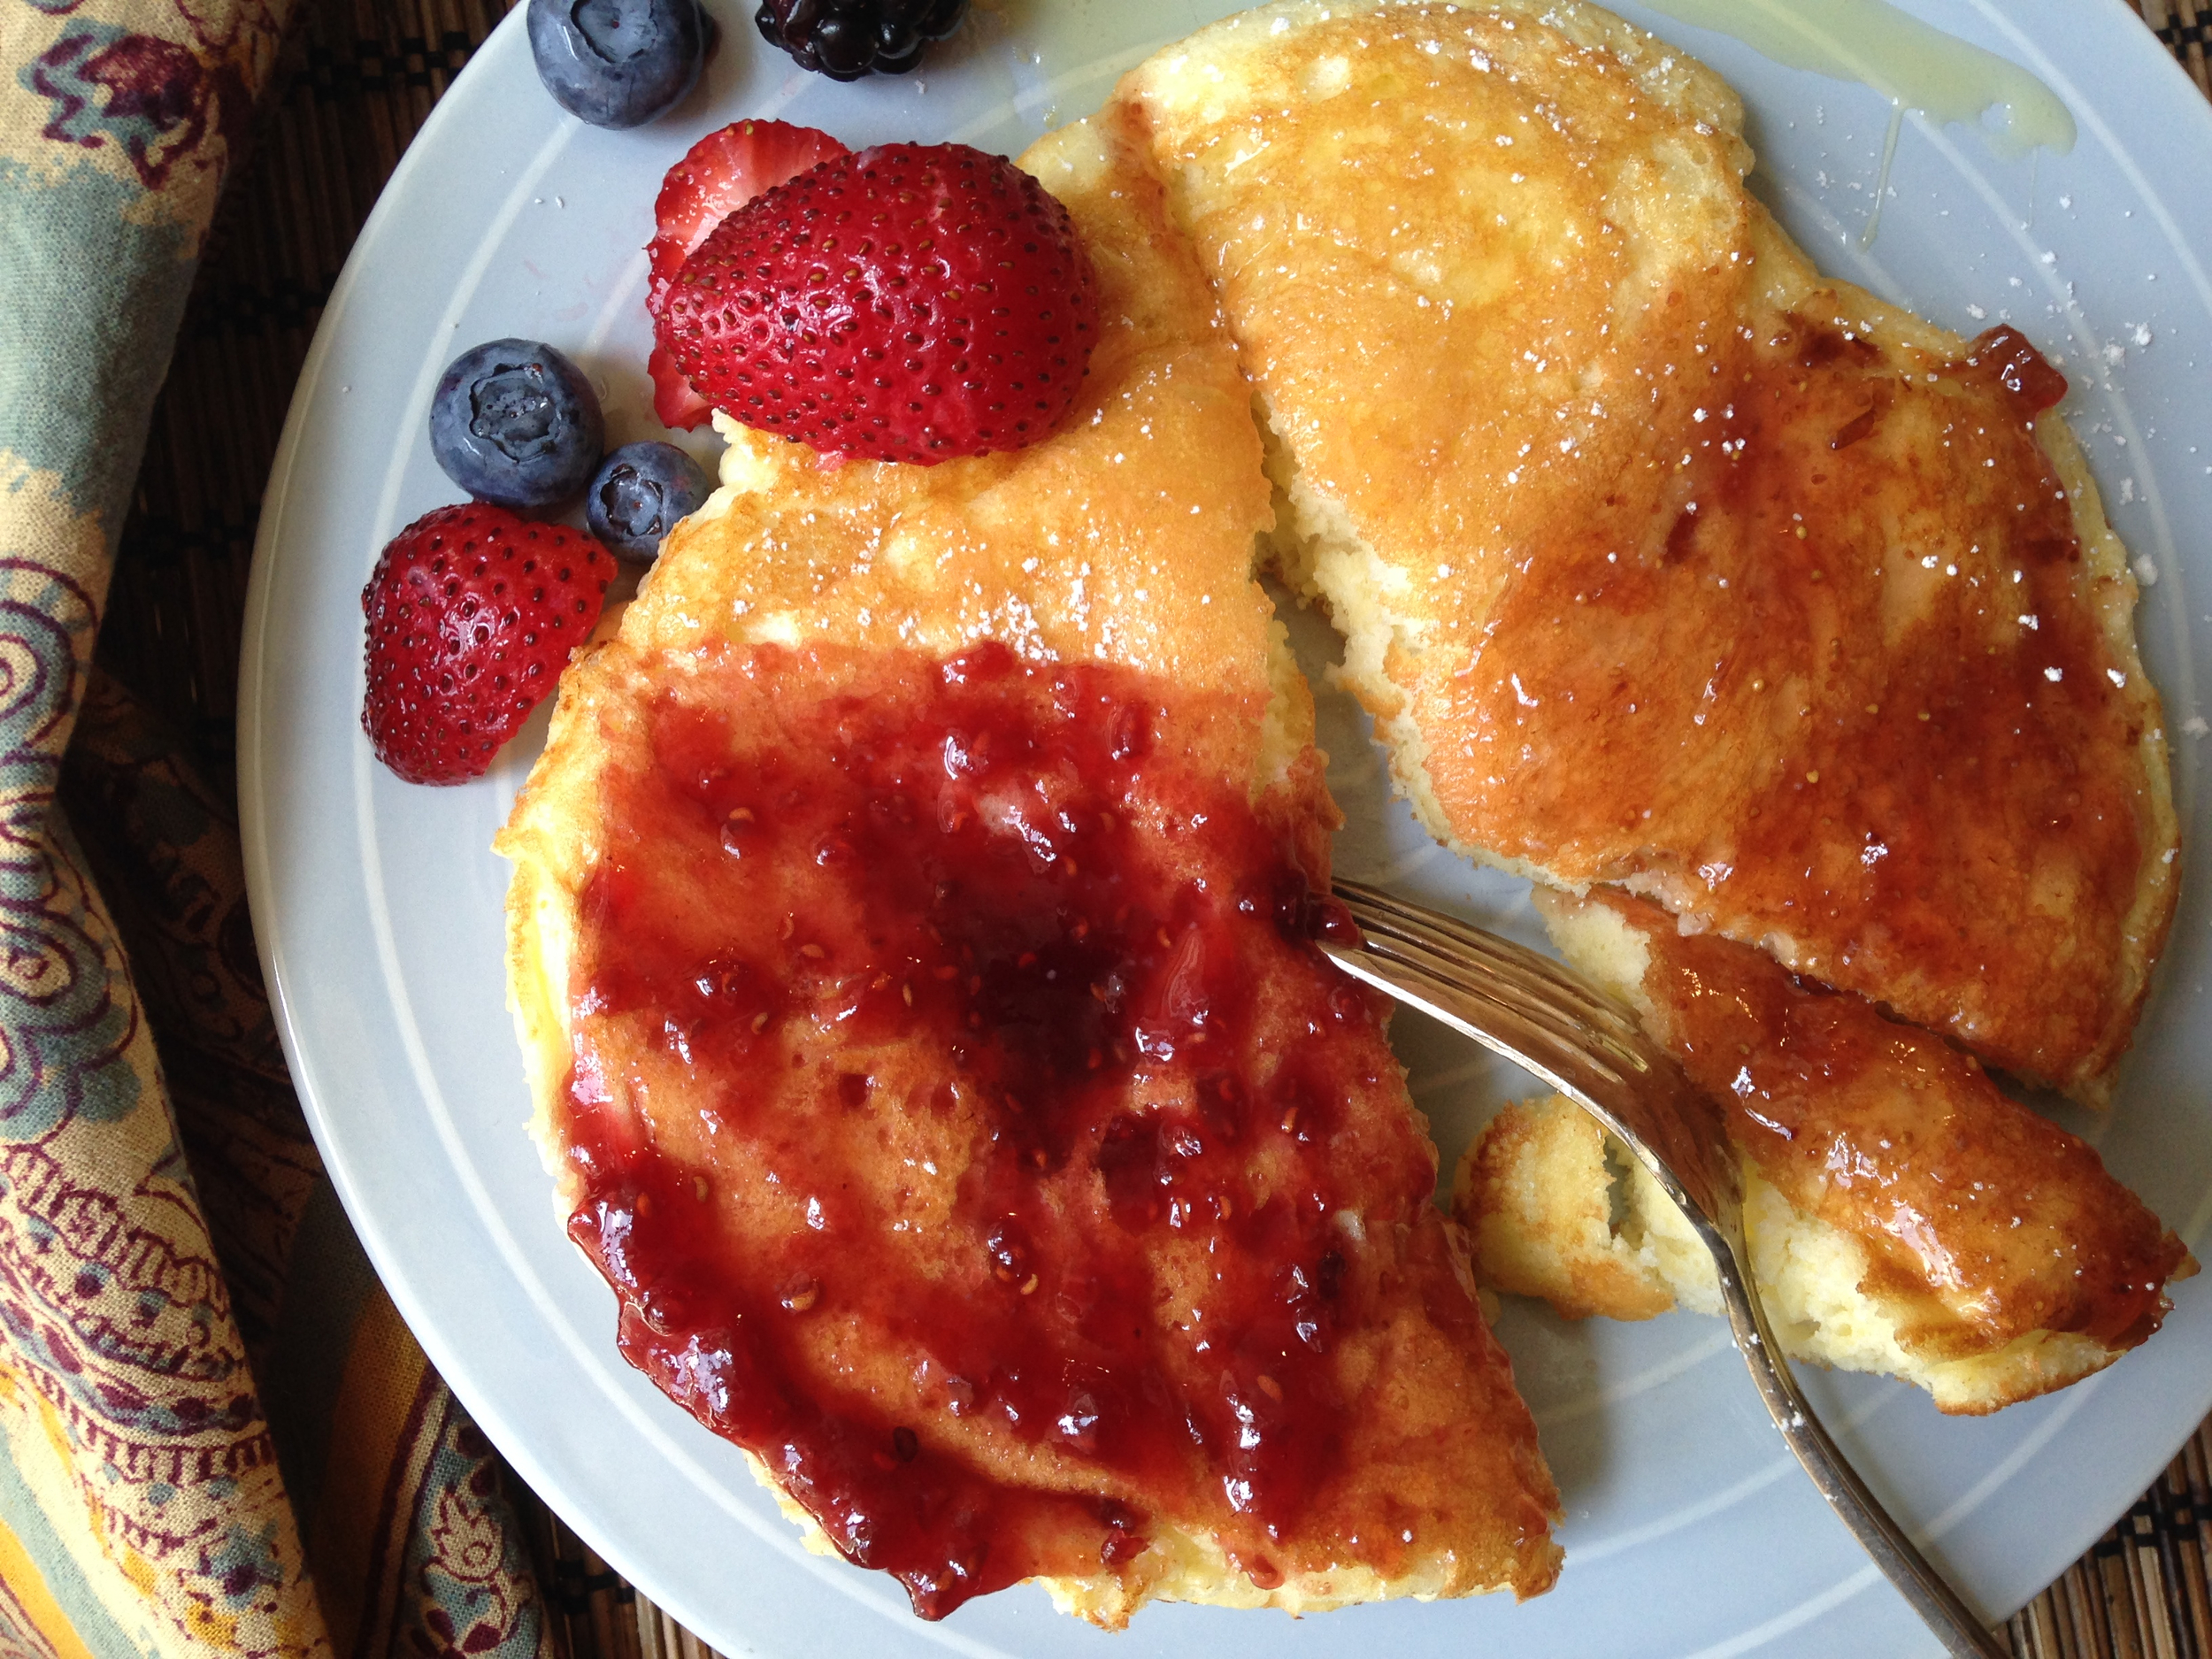 Sweet Soufleed Omelet With Jam. Scroll down for the recipe!